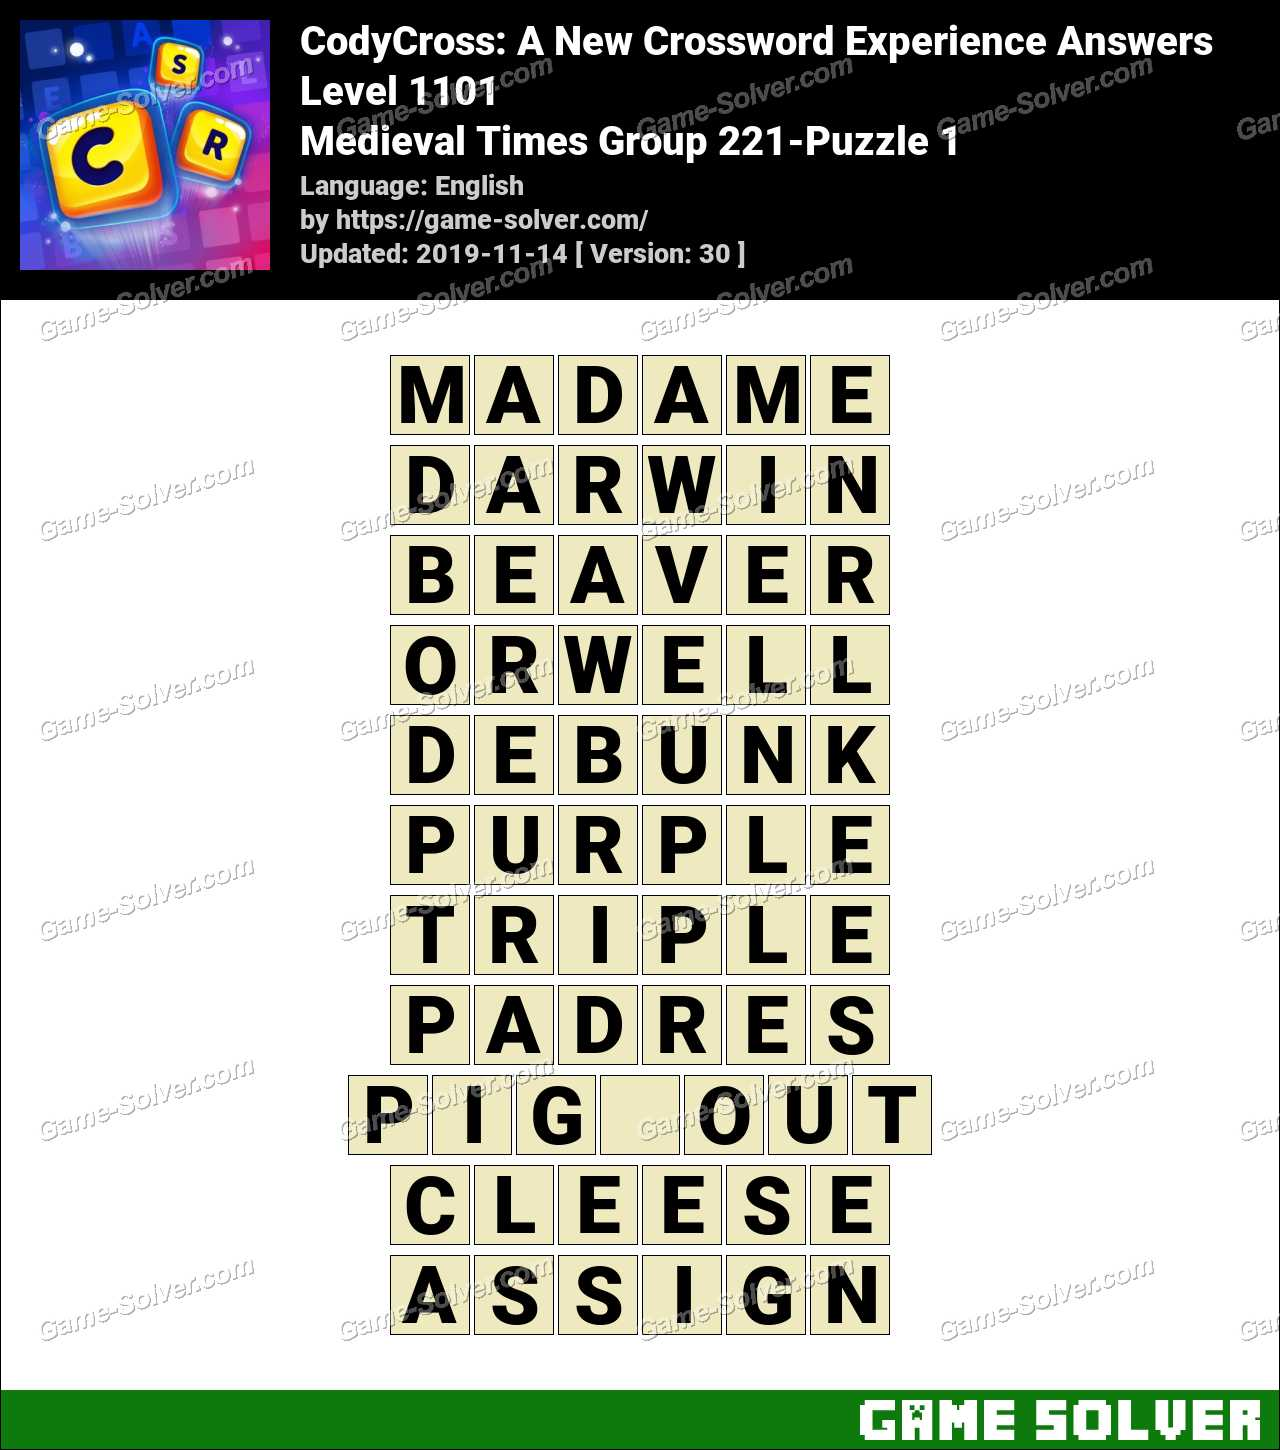 CodyCross Medieval Times Group 221-Puzzle 1 Answers